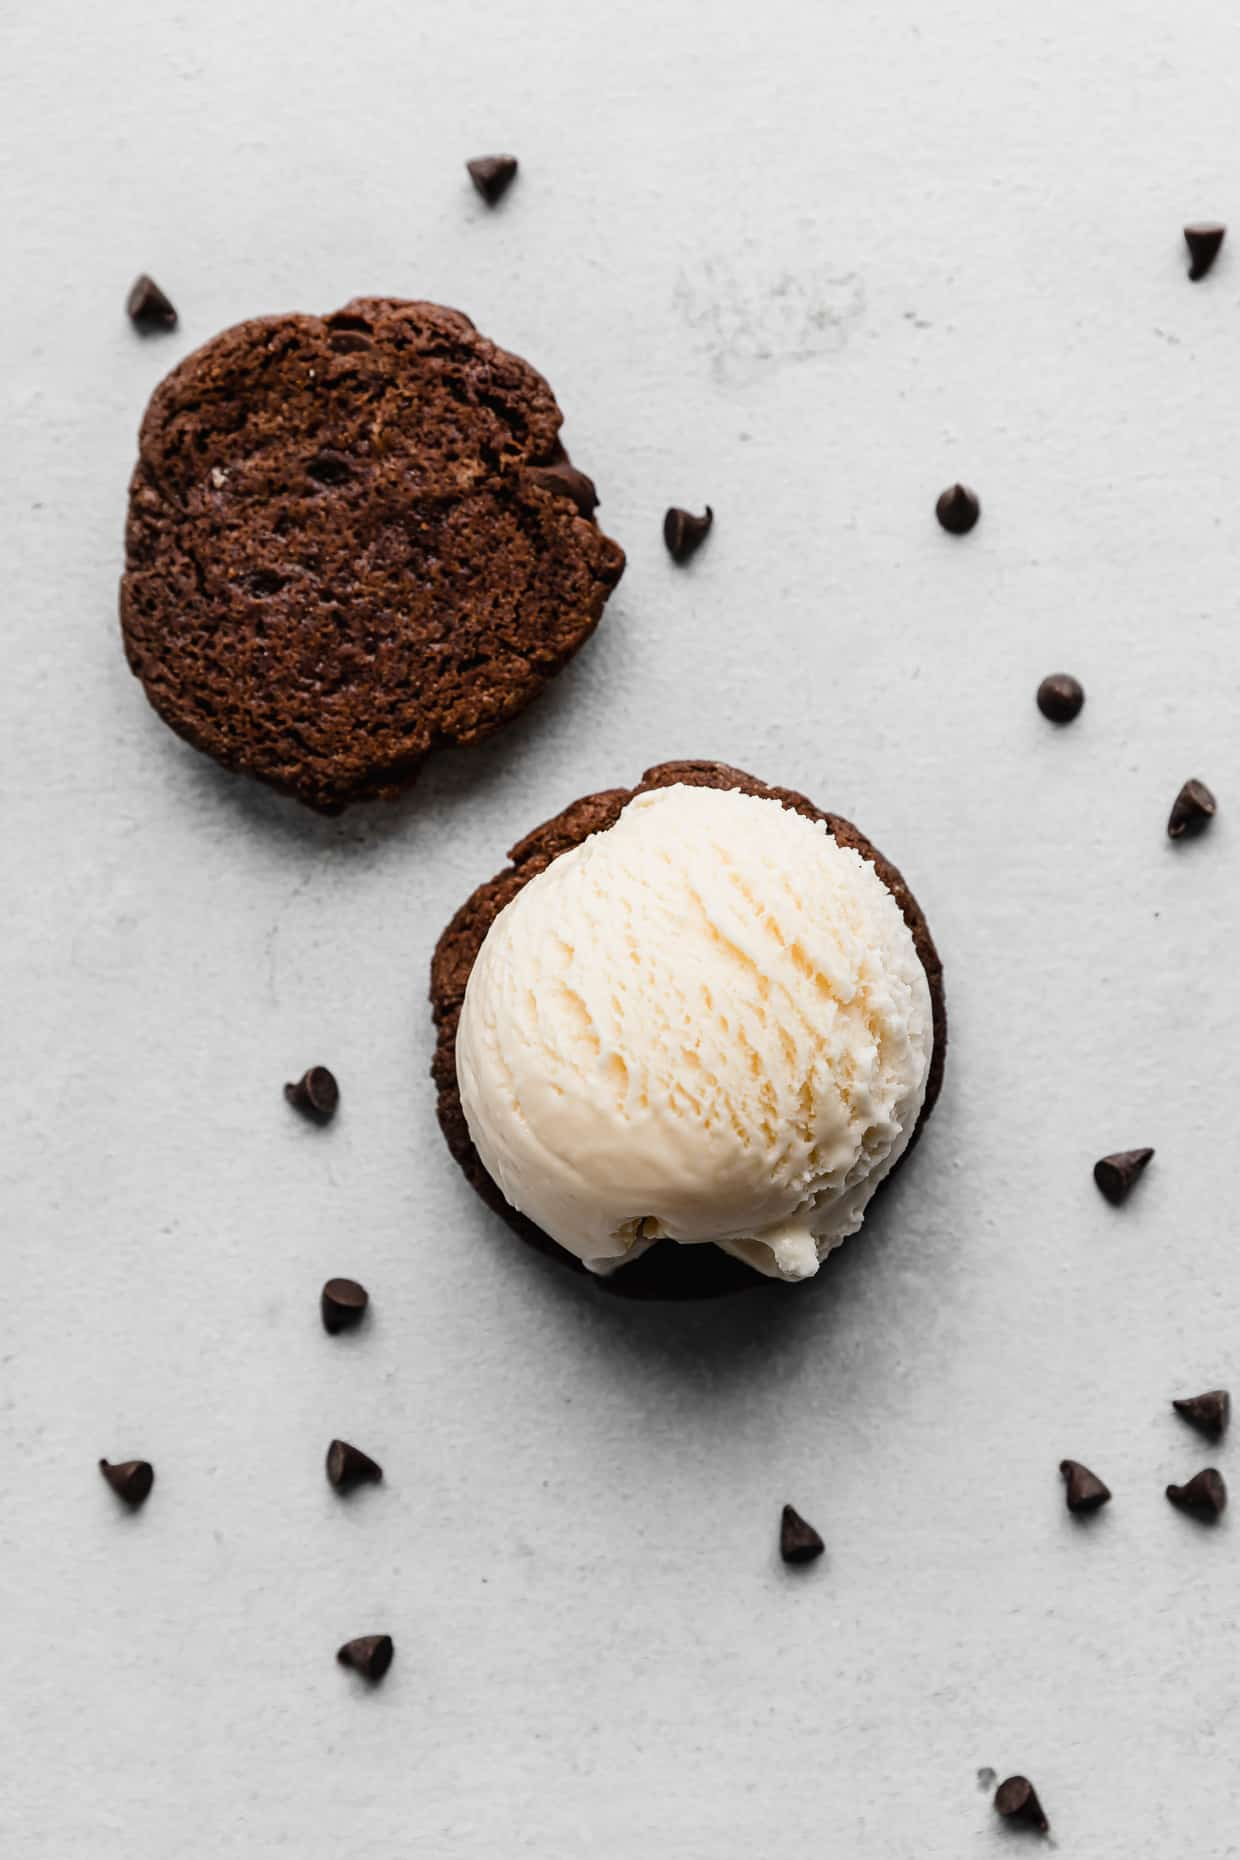 Overhead photo of a scoop of vanilla ice cream on a chocolate cookie.